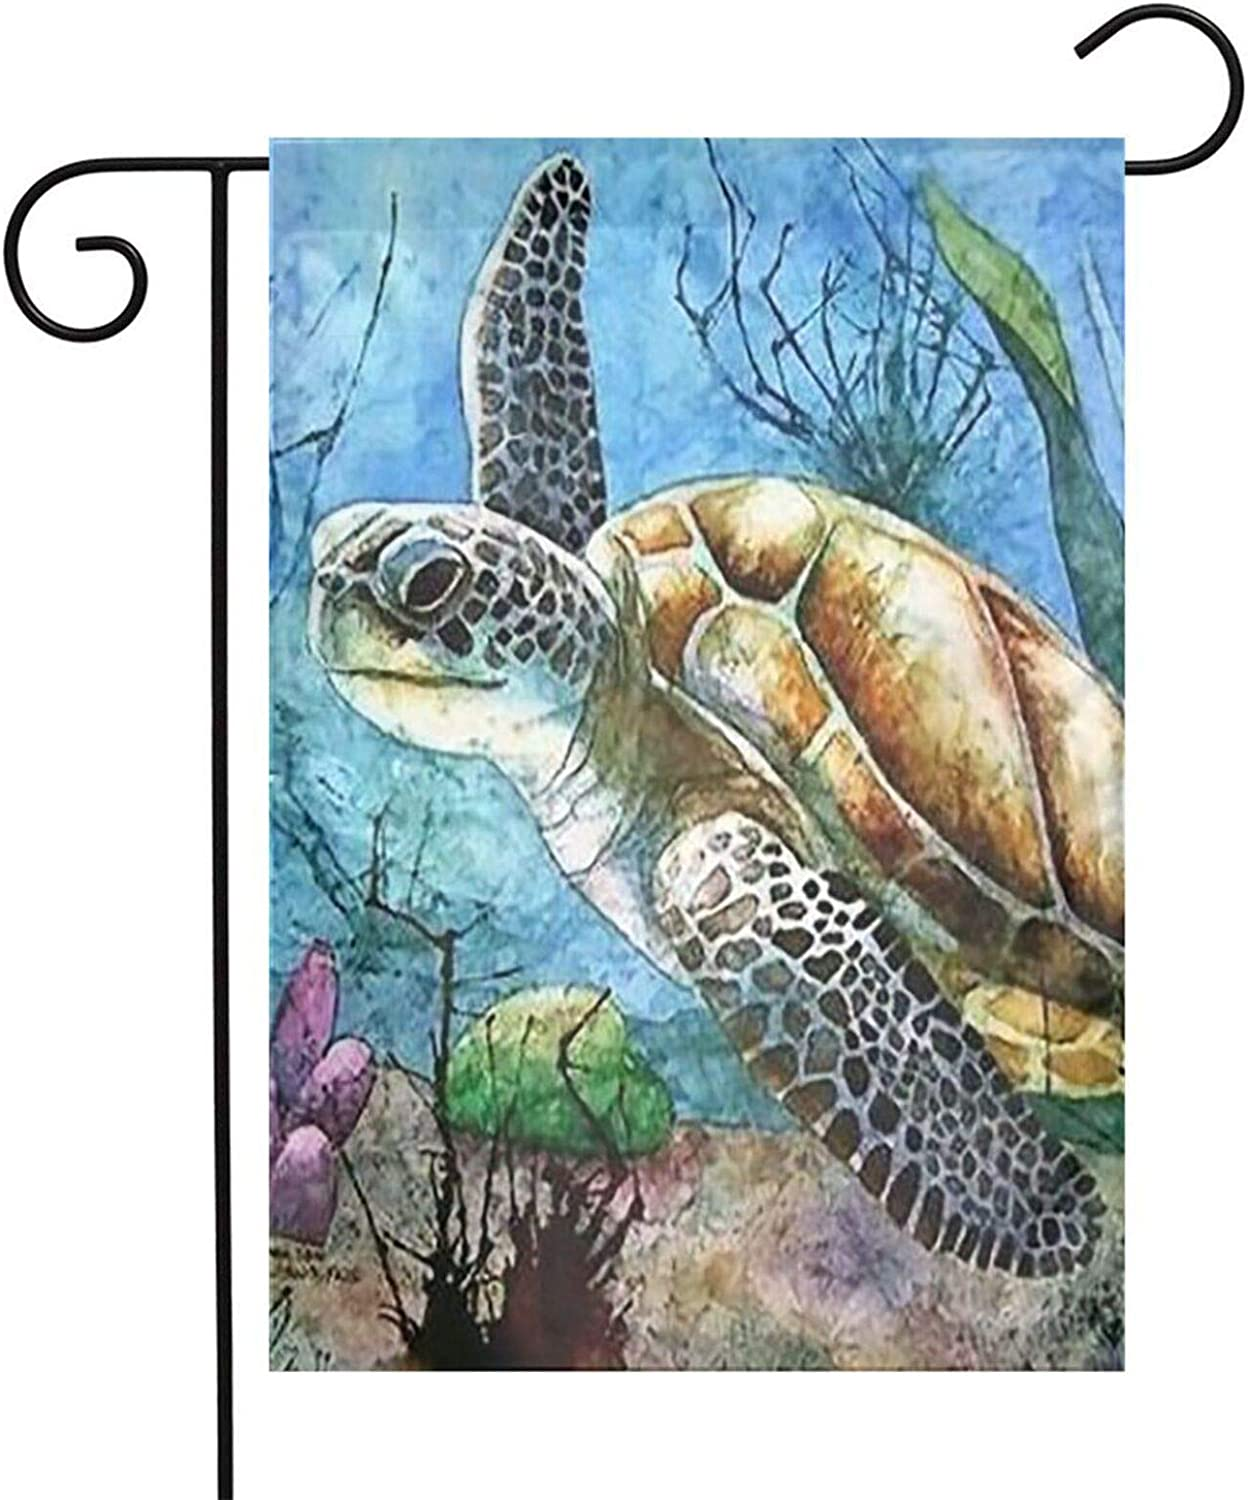 Txocouk Sea Turtle Lonely Swim Oil Painting in Ocean Welcome Garden Flag Double Sided,Decorative Garden Flag Yard Banner for Outdoor Decorations(12x18in)